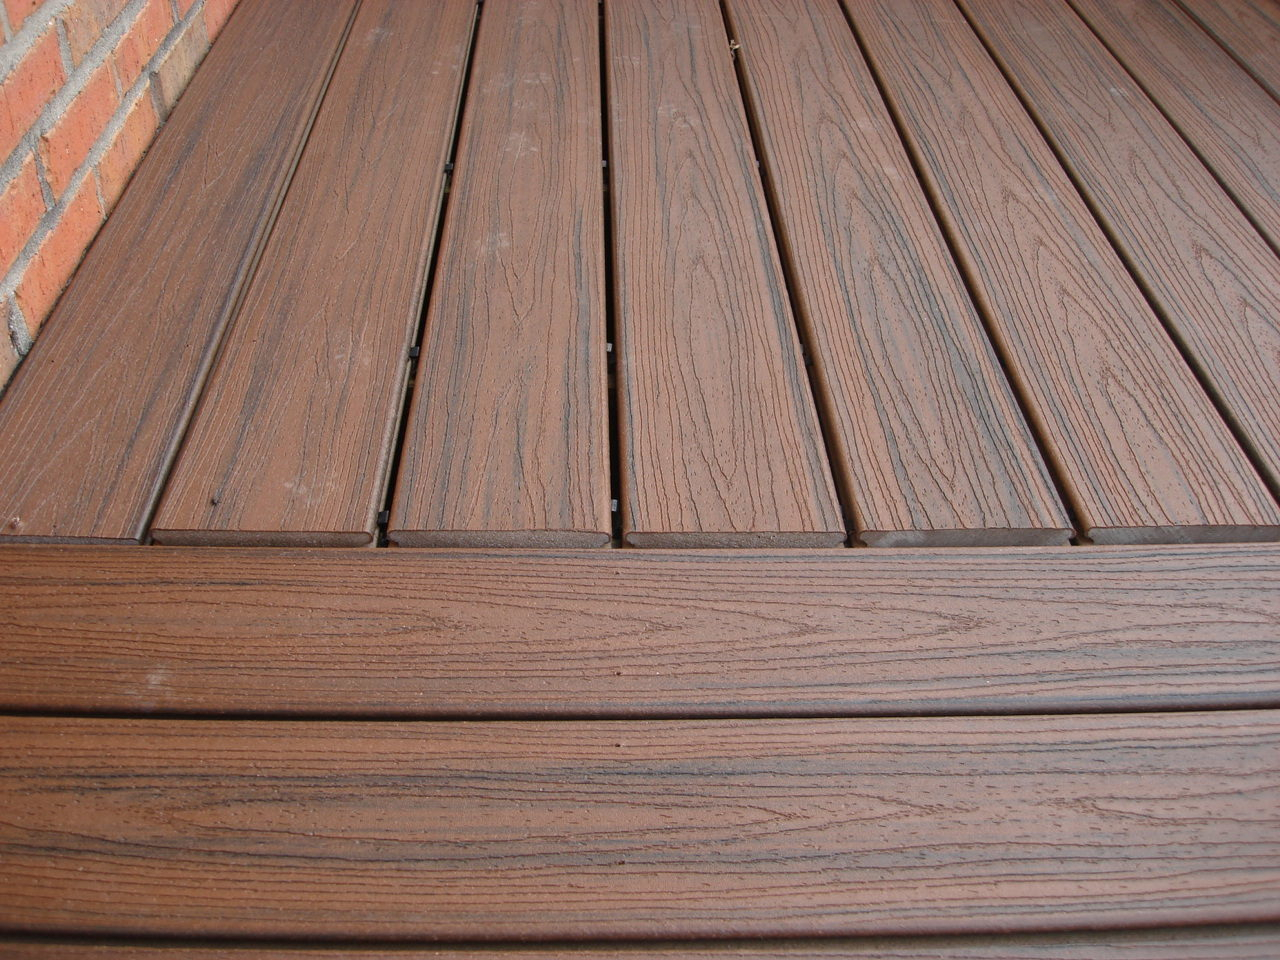 Trex Decking Board Lengths Decks Ideas for dimensions 1280 X 960